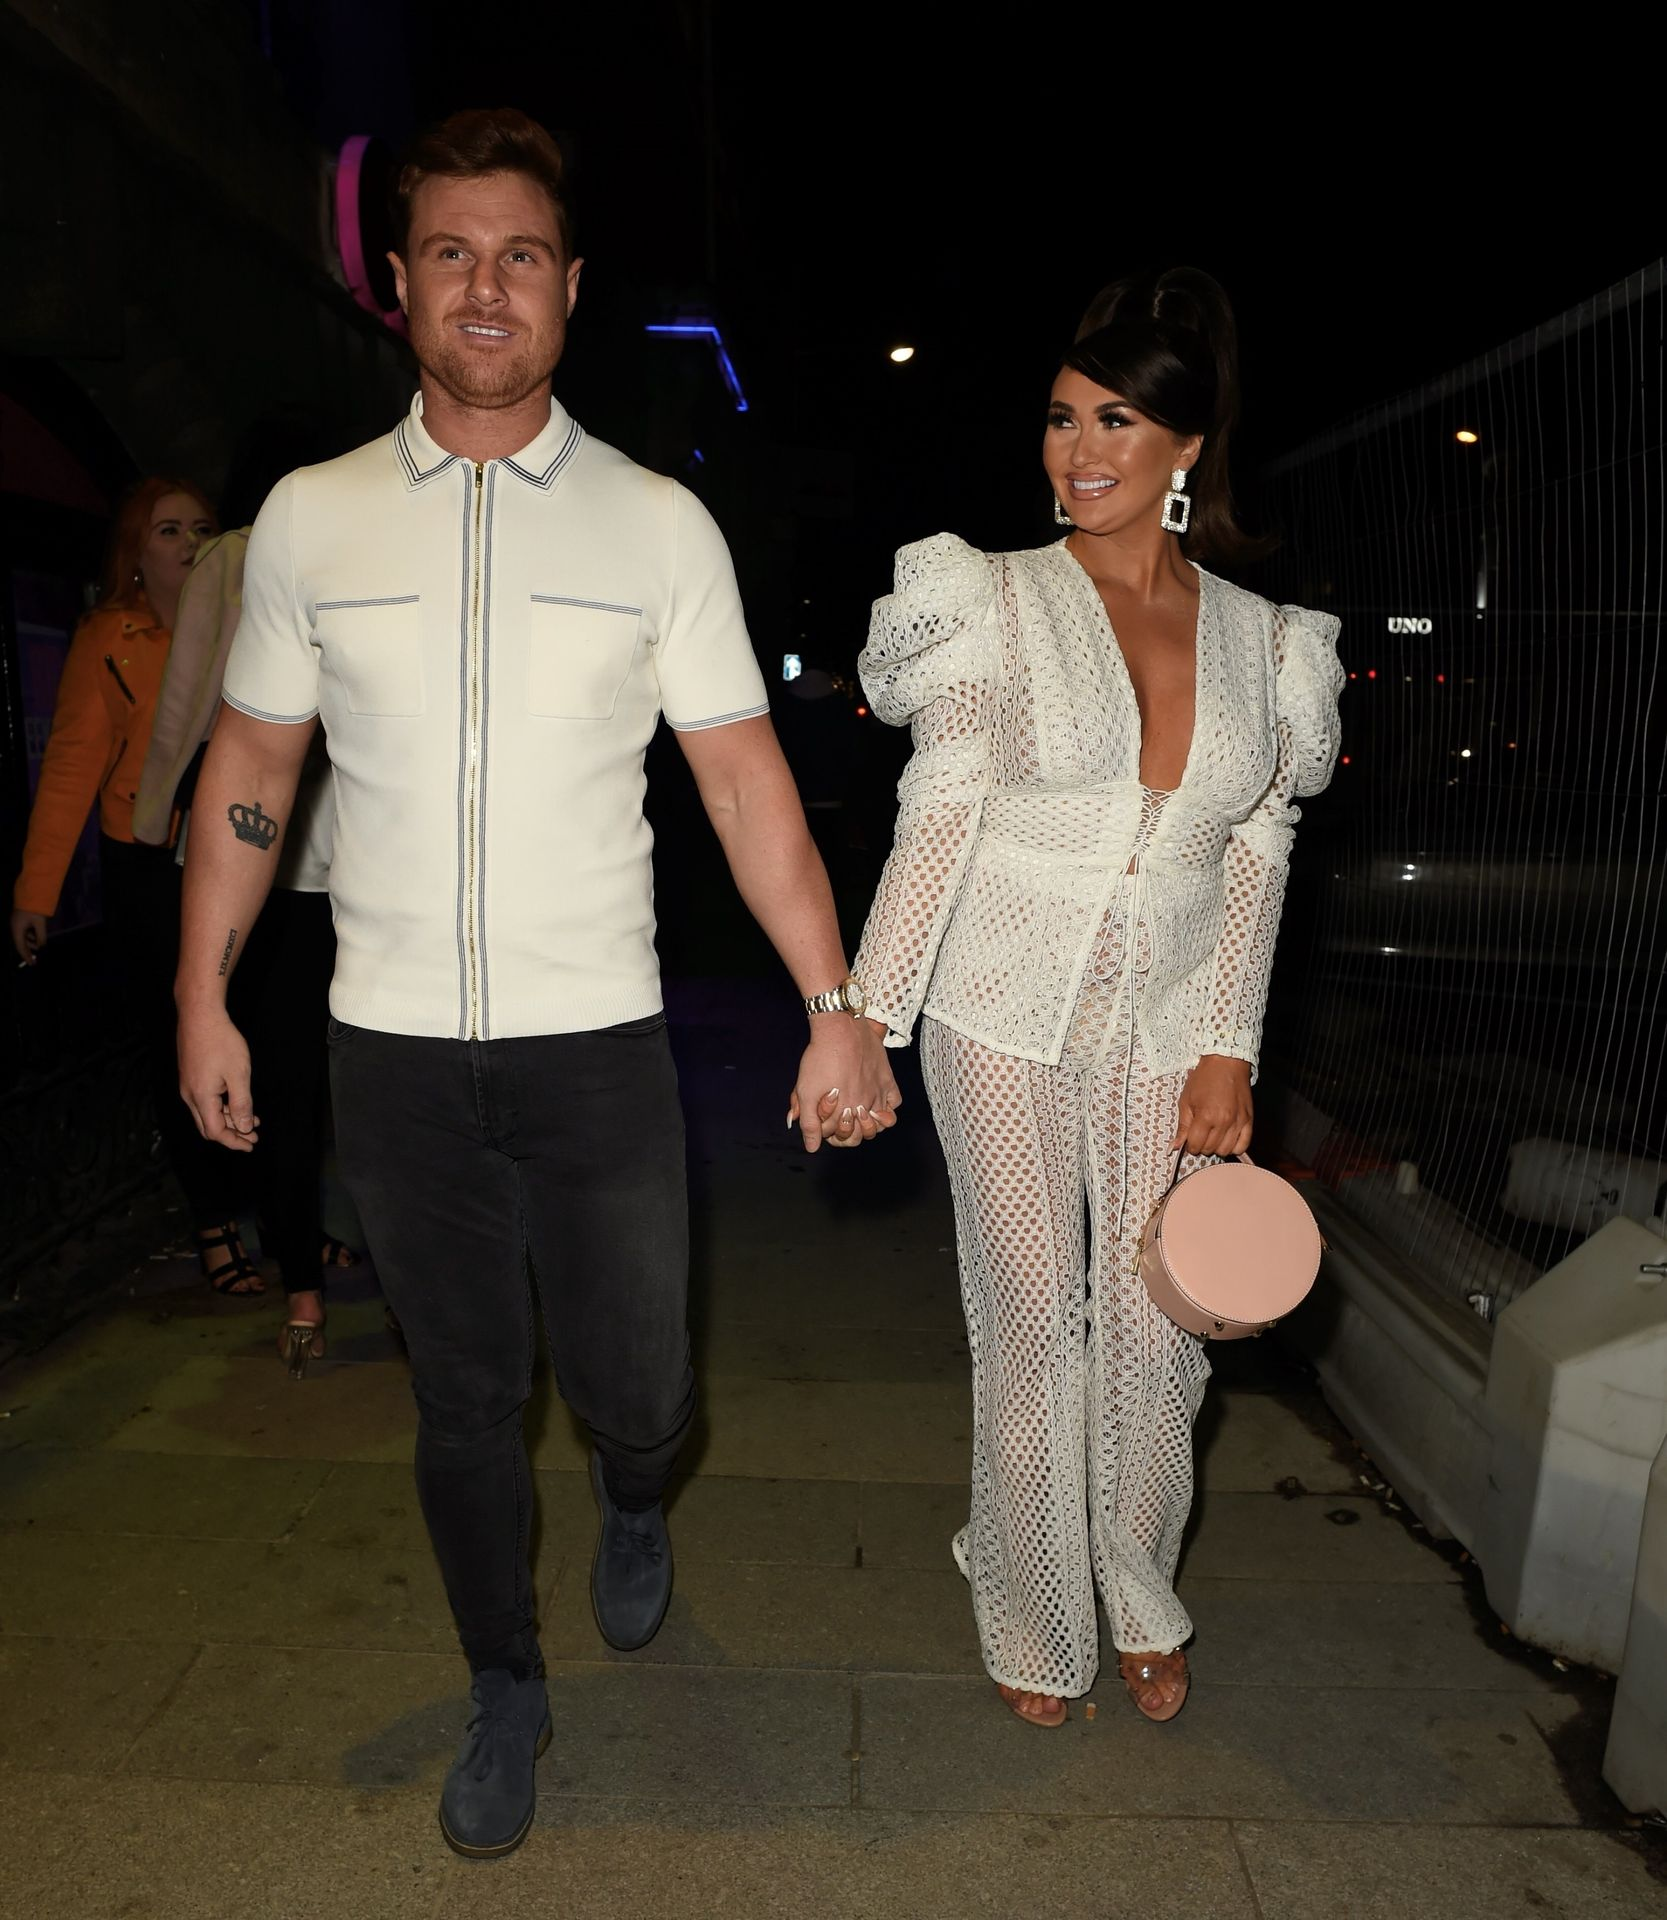 Charlotte Dawson Shows Her Boobs At Avenue Nightclub Launch Party 0019